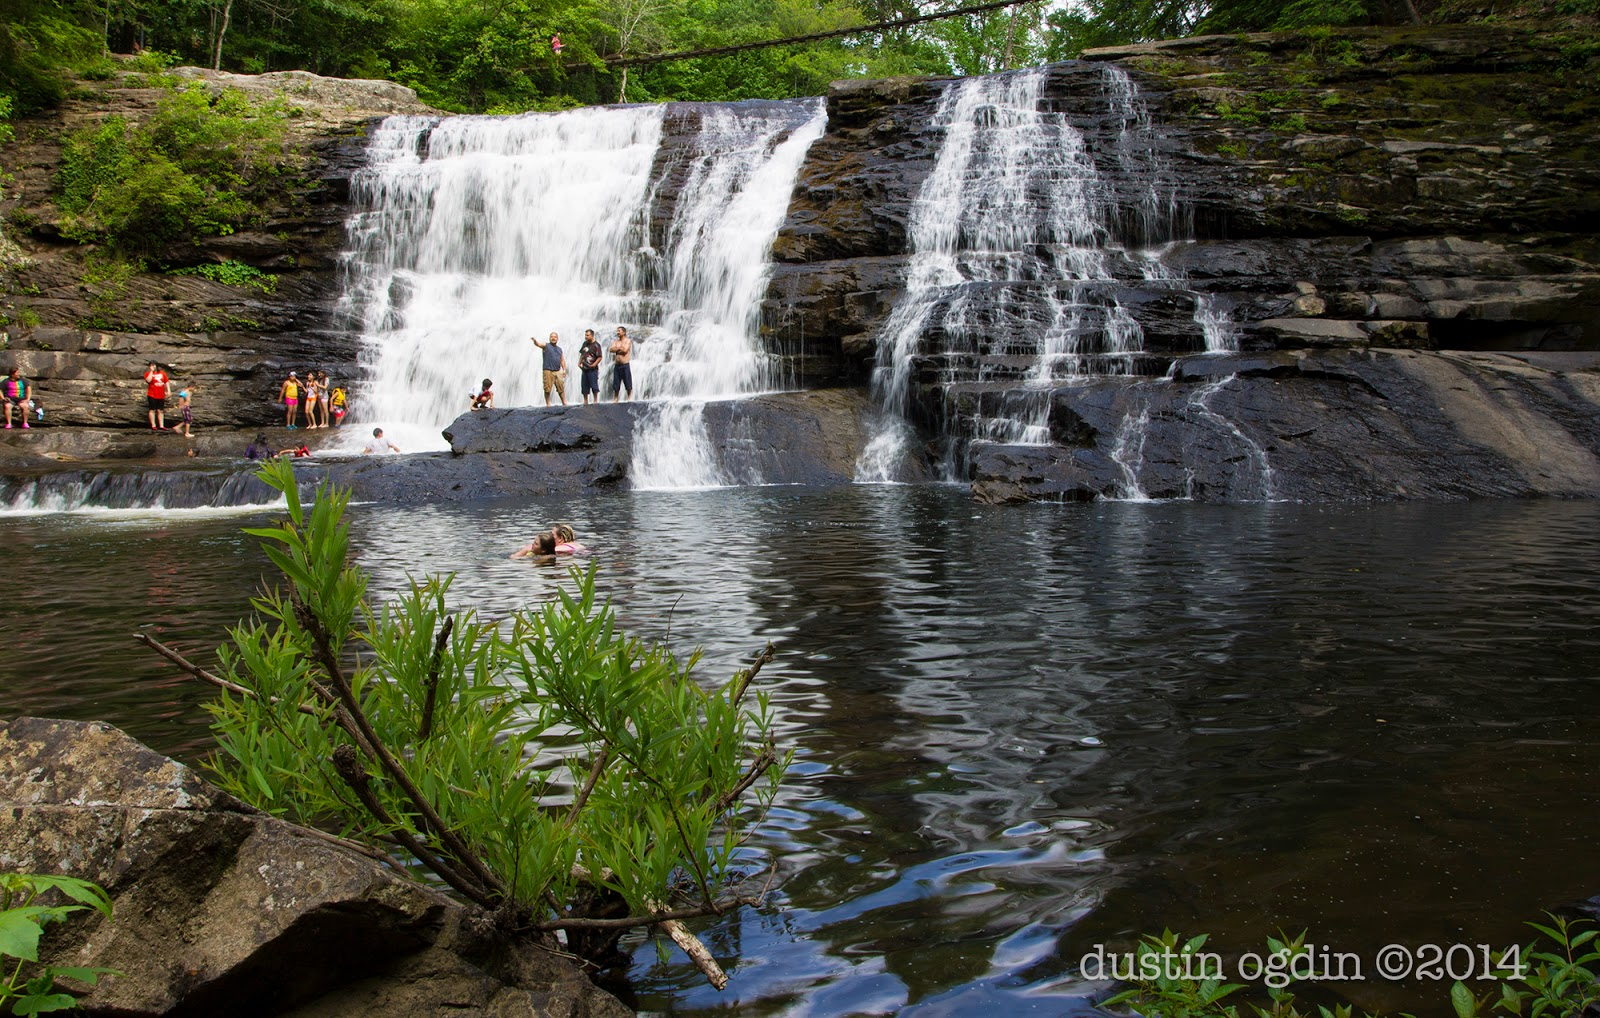 Swimmers at Cane Creek Cascades, Fall Creek Falls